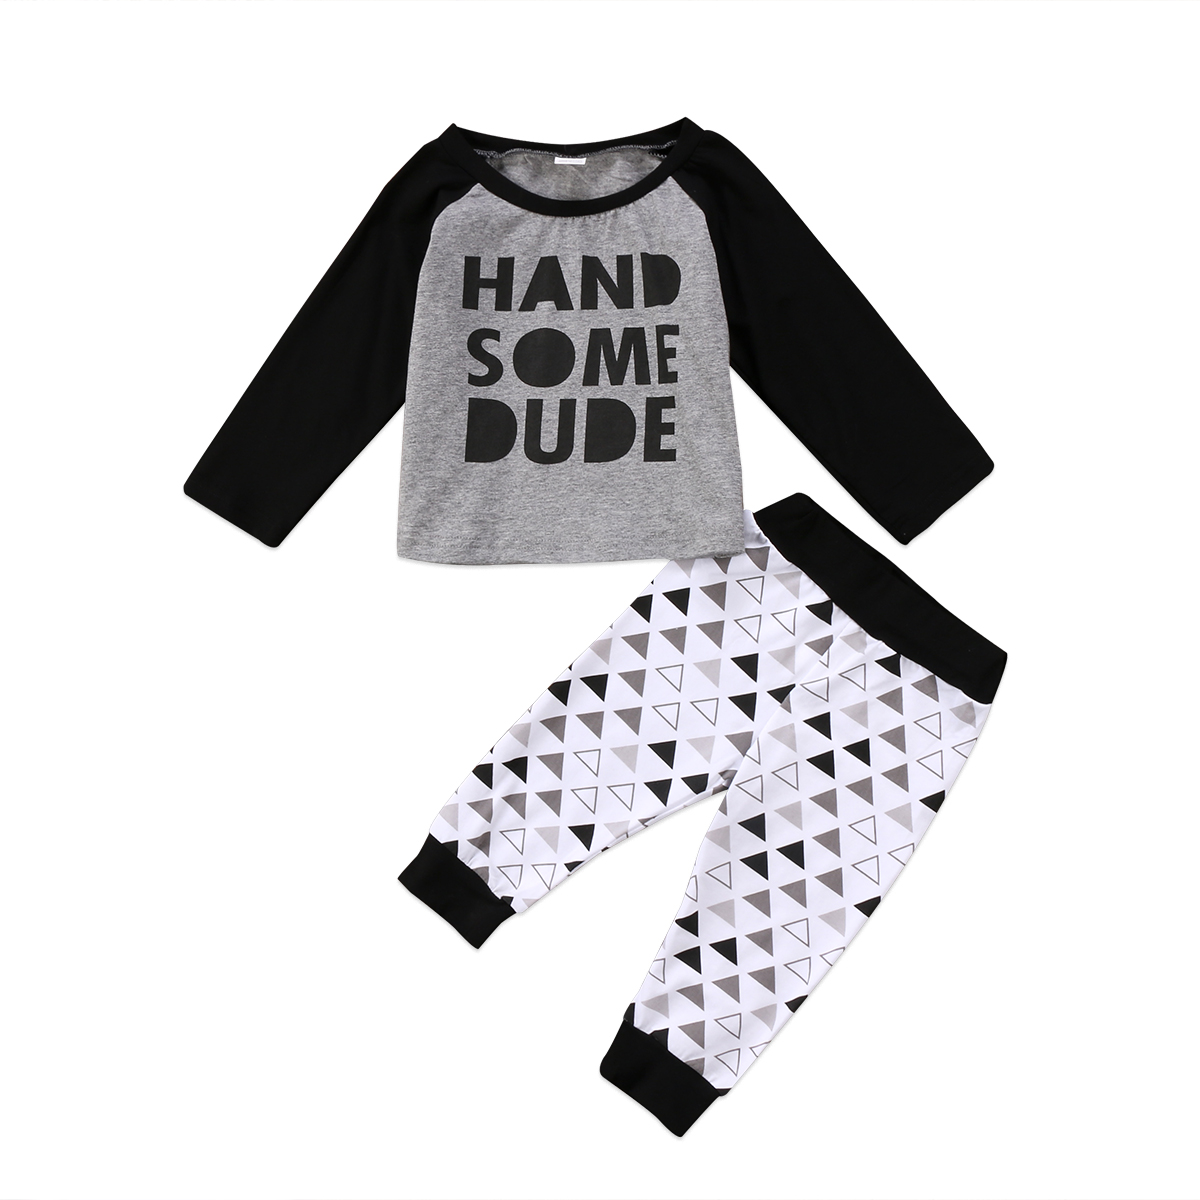 Baby Bodysuit The Dude Big Lebowski Baby Clothes for Infant Boys